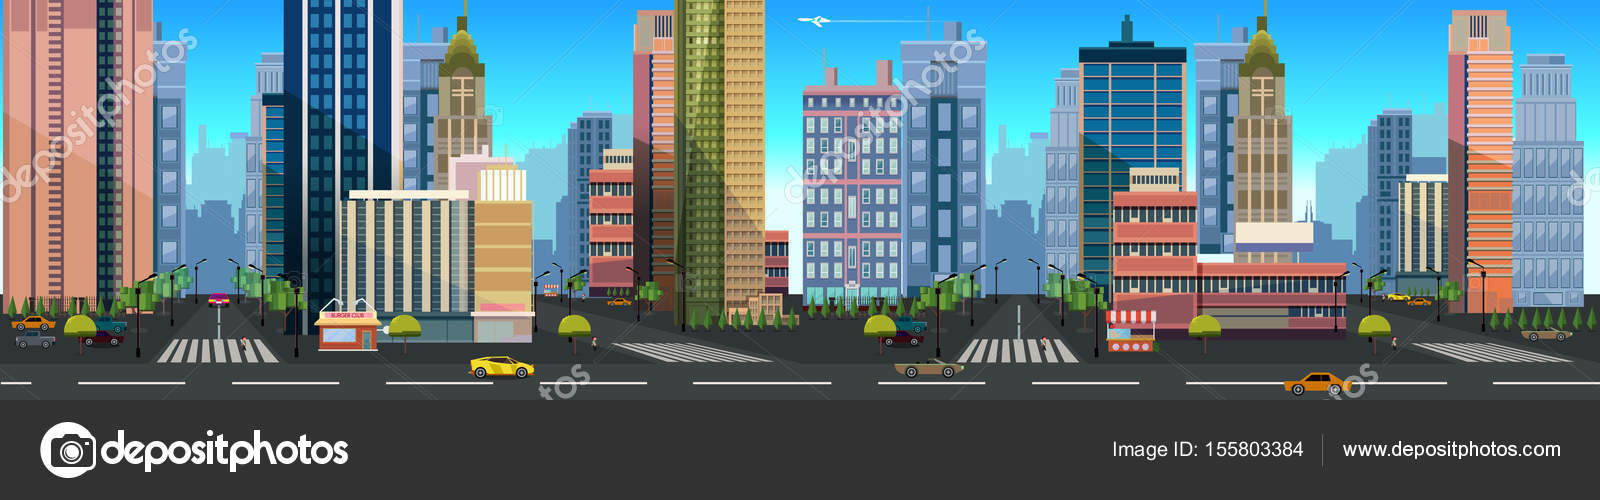 illustration of a city landscape with buildings and road unending background with separated layers